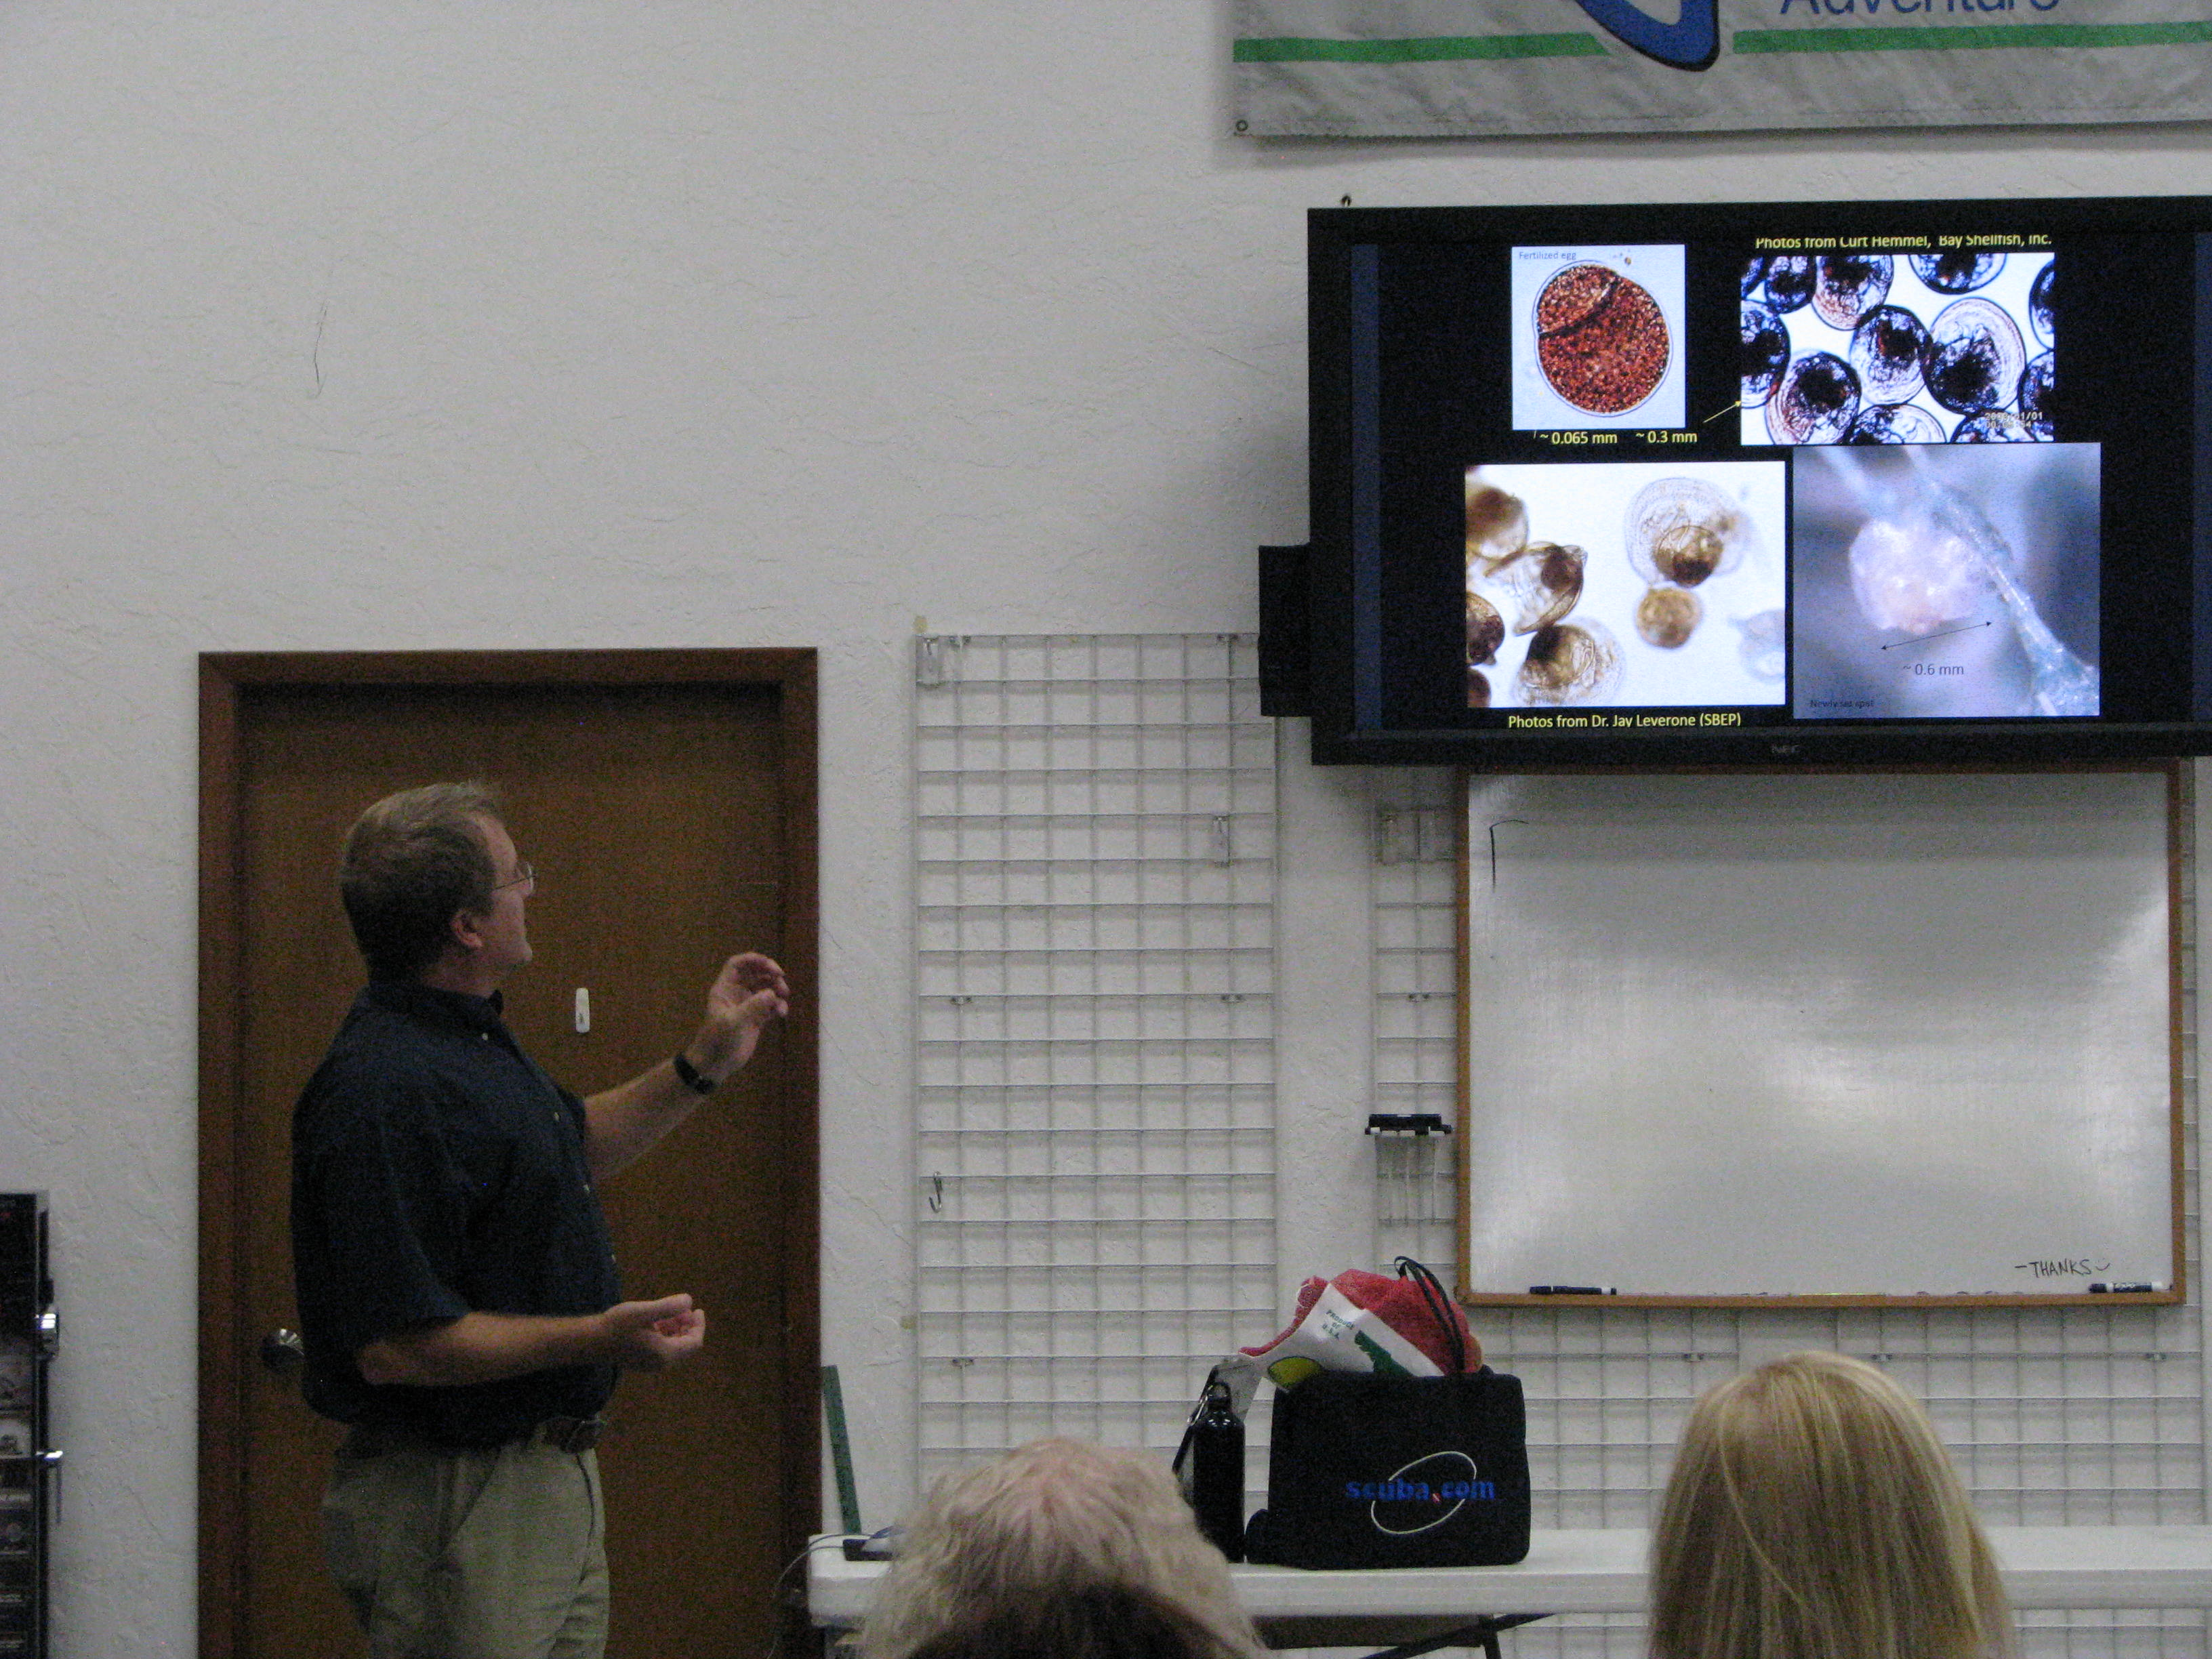 Dr. Stephen Geiger, a research scientist and the Molluscan Fisheries Subsection Leader at FWC talks about scallops at the monthly meeting.